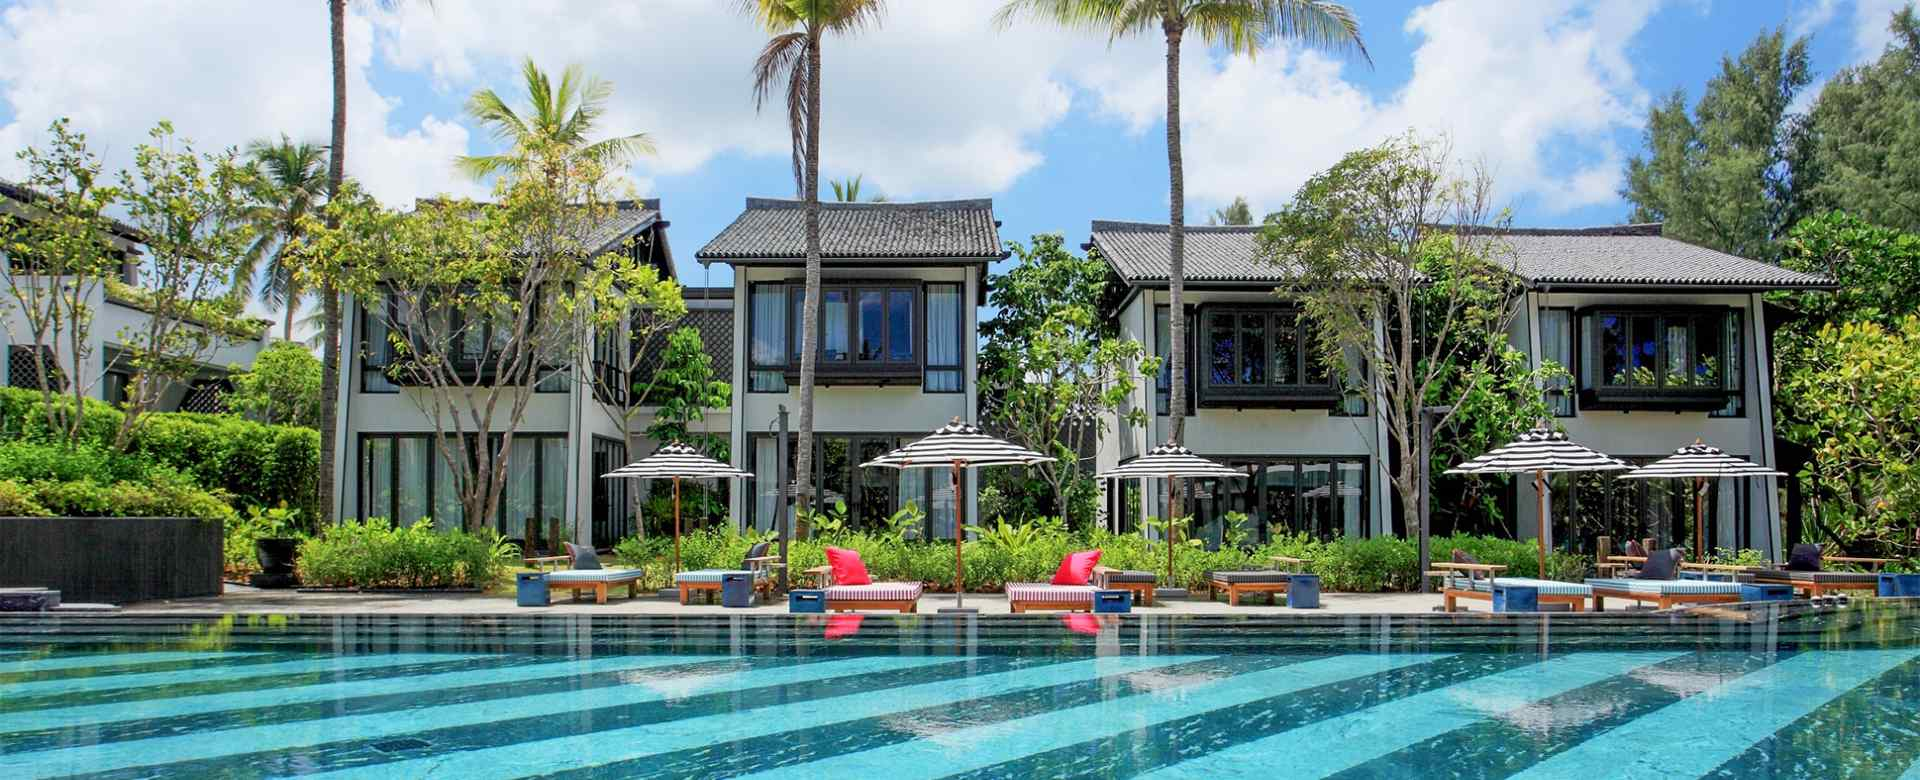 11-Over-View-Baba-Beach-Club-Phuket-Khok-Kloi-Best-Luxury-Beach-resort-Hotel